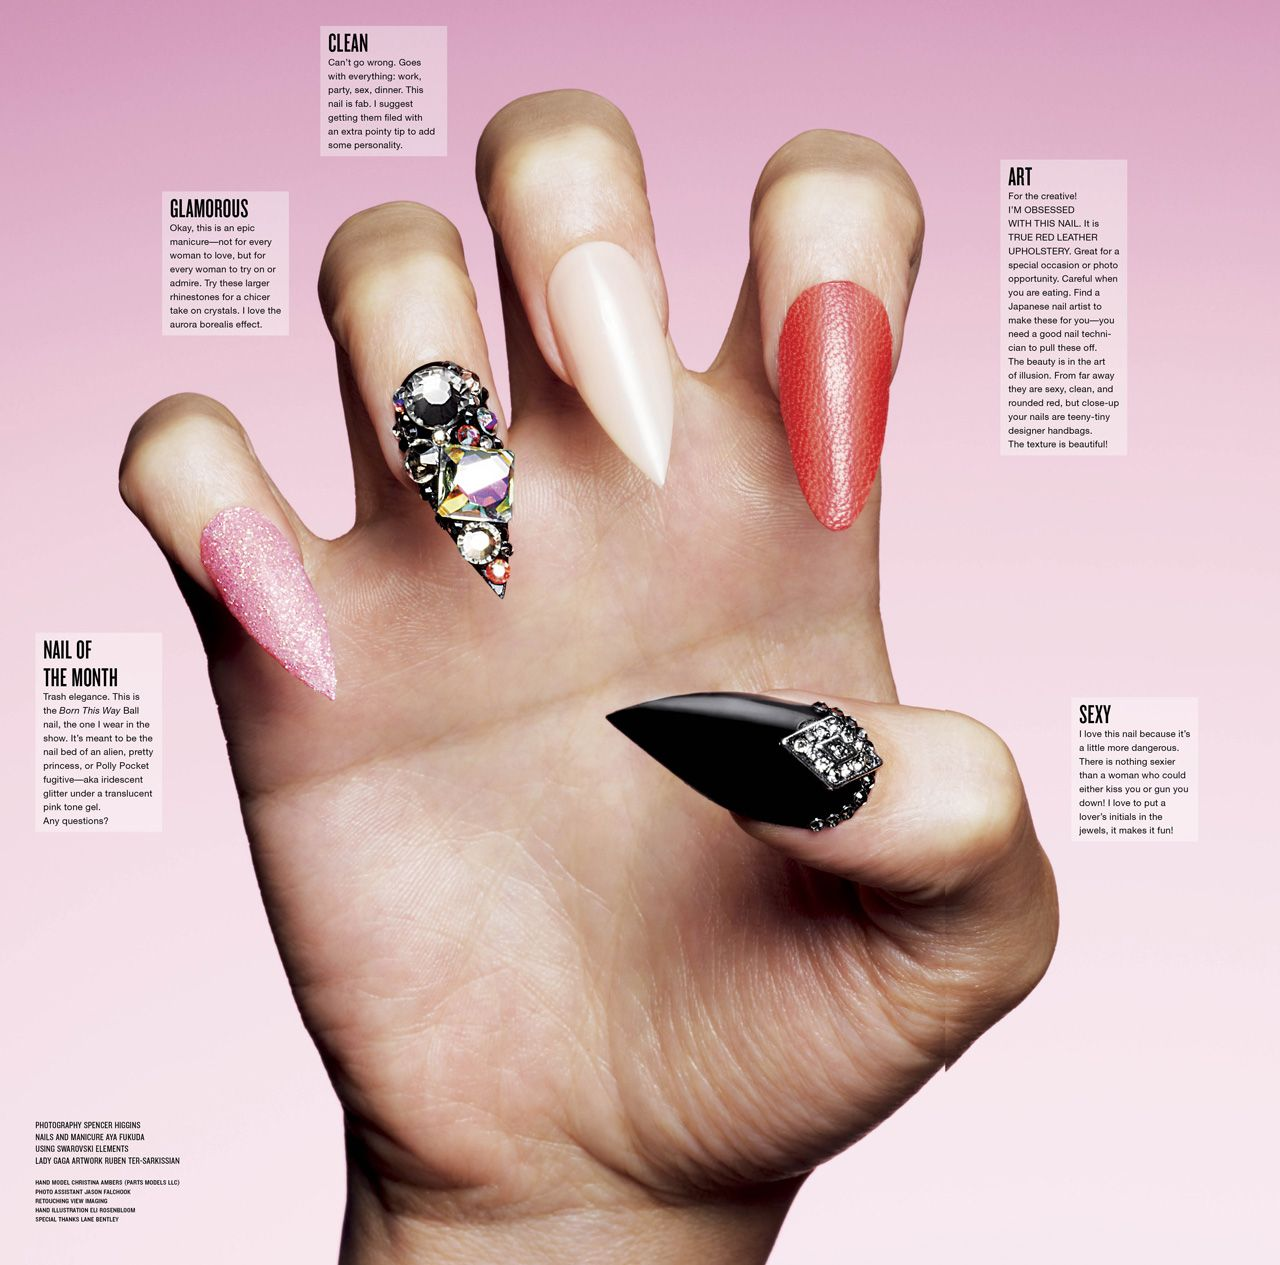 This Magazine Layout Is From V Magazine And Its About Nail Art